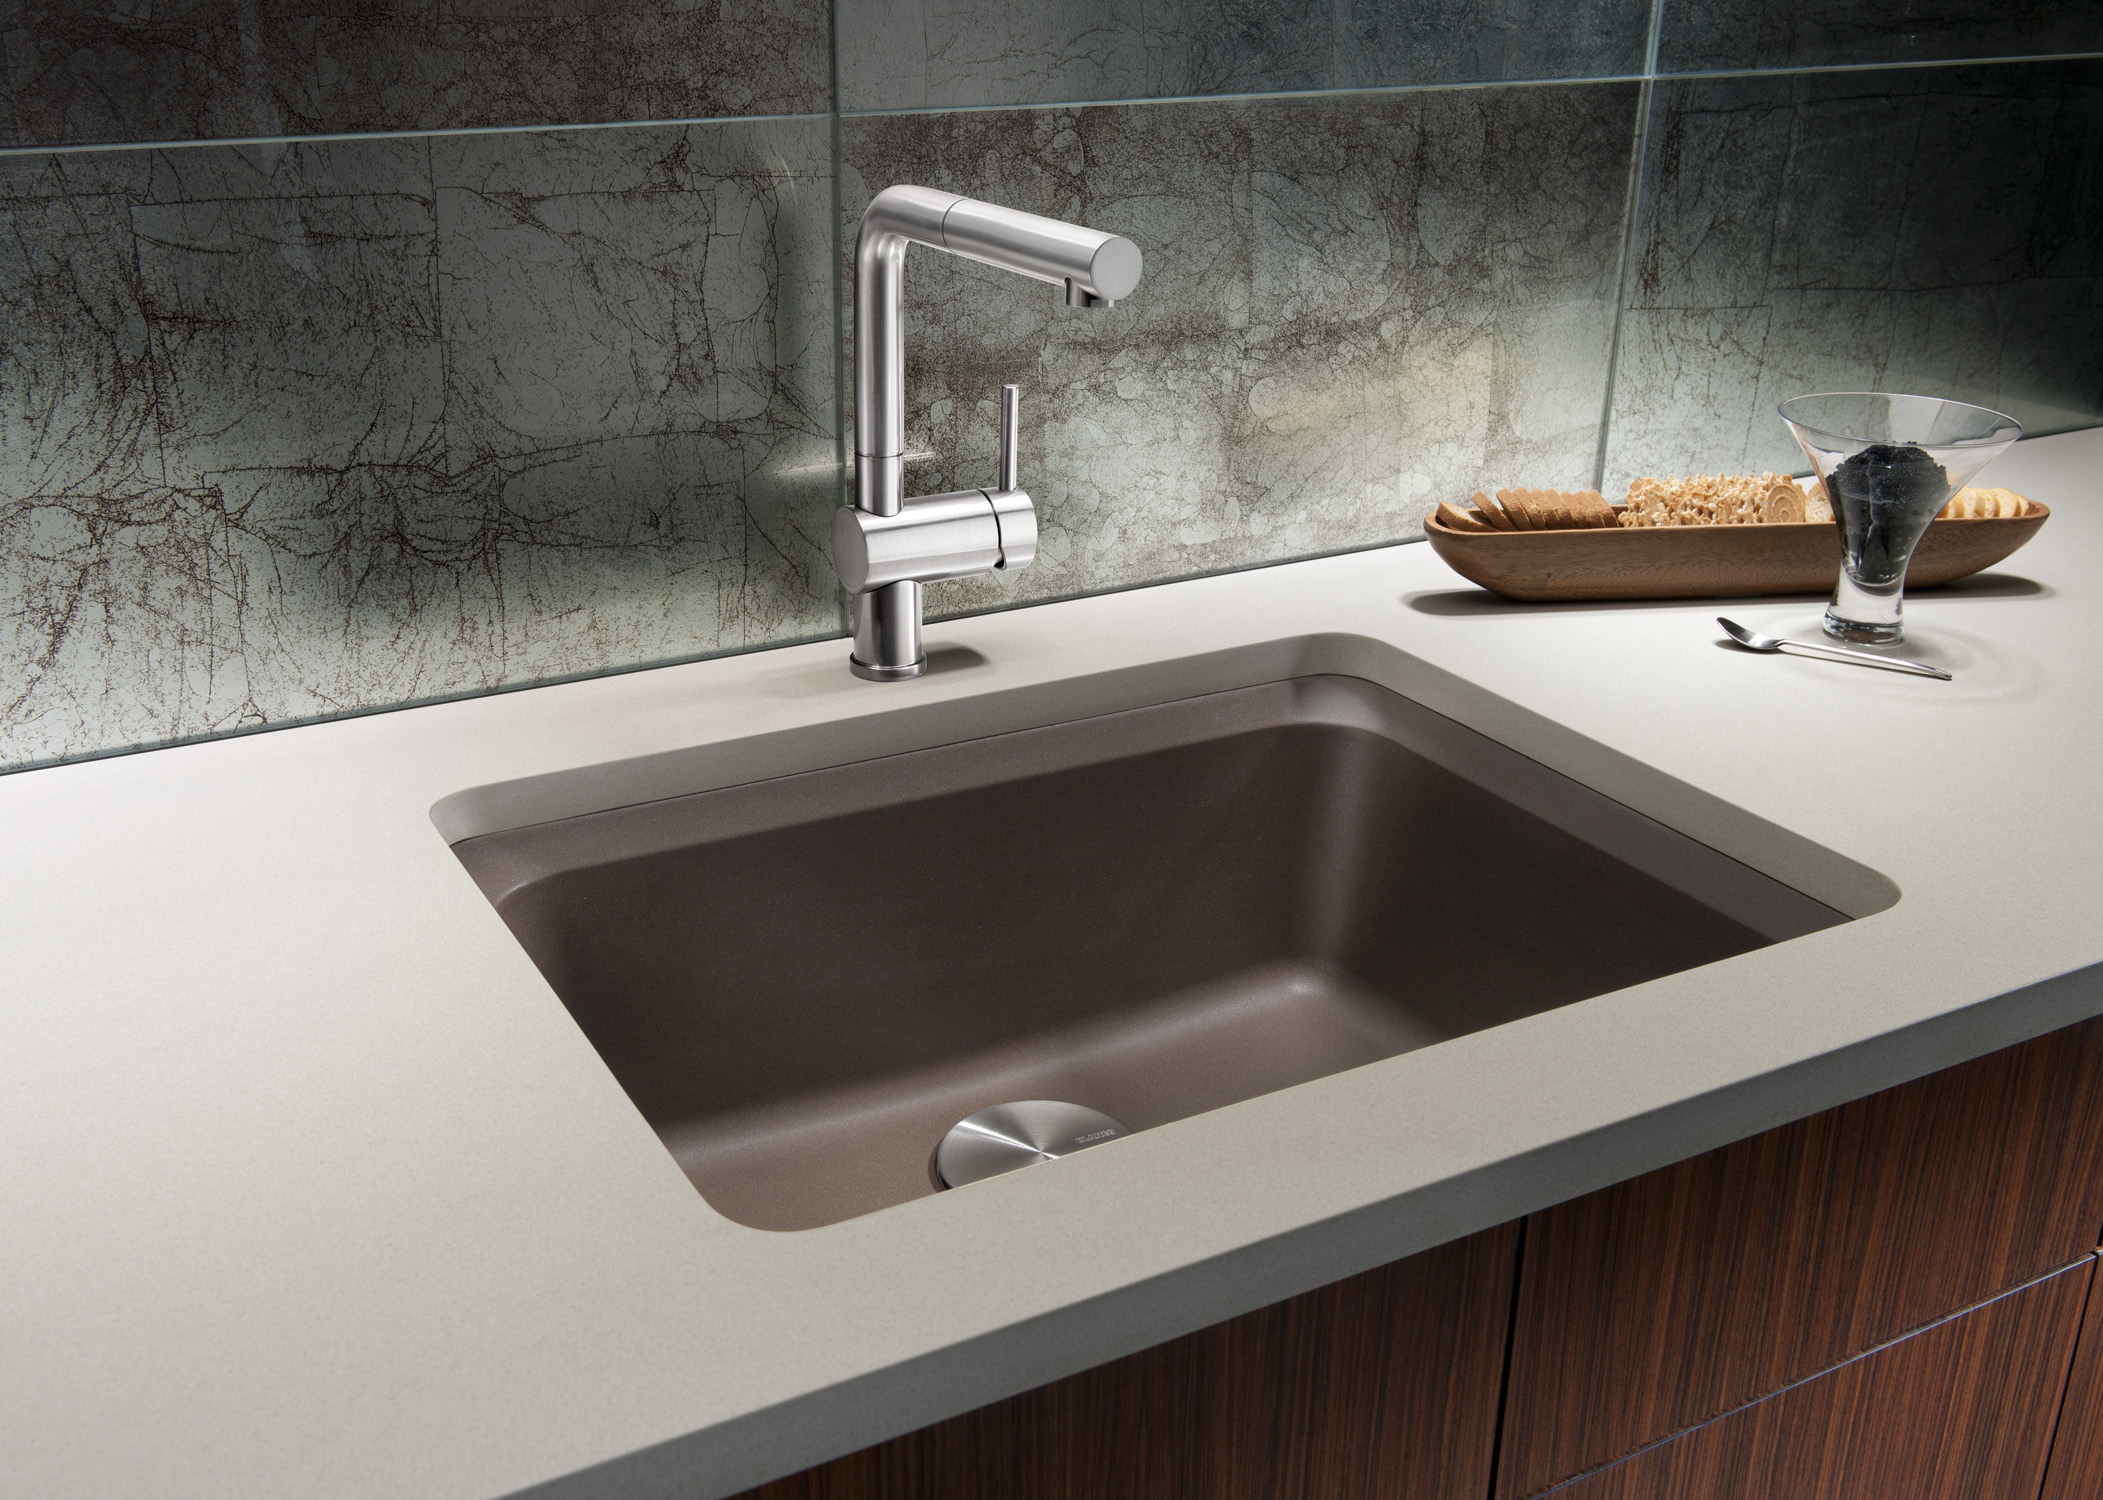 The New Blanco Silgranit Ii Vision Designer Kitchen Sink